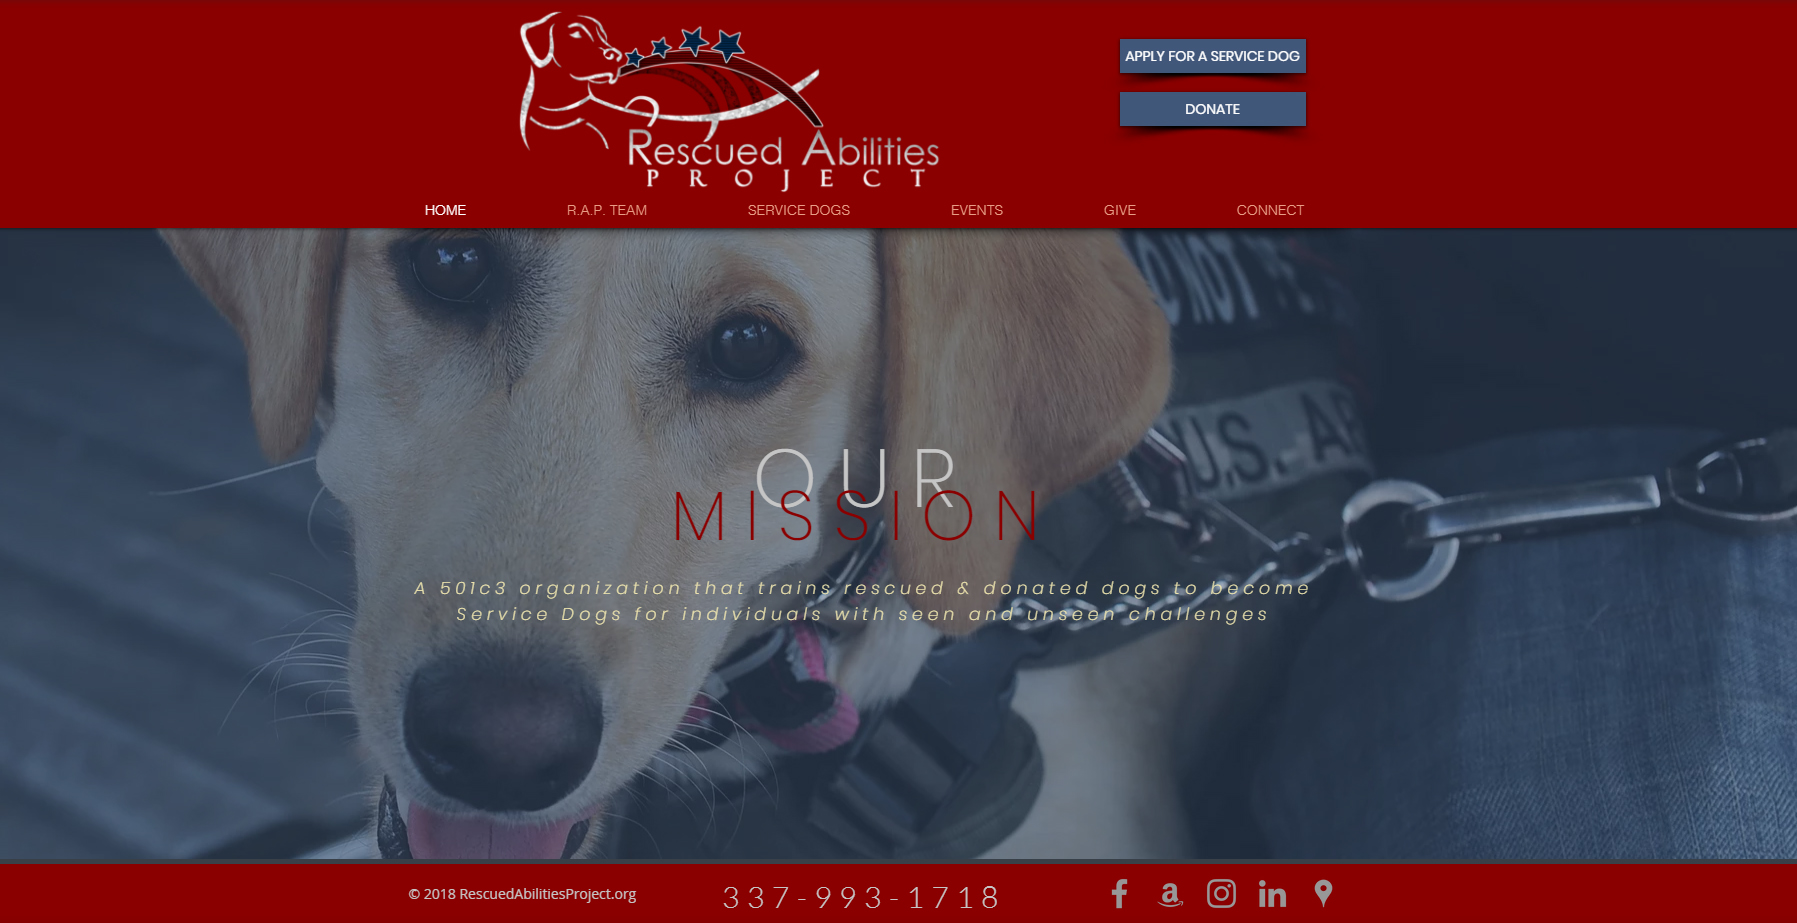 SERVICE DOGS | United States | Rescued Abilities Project